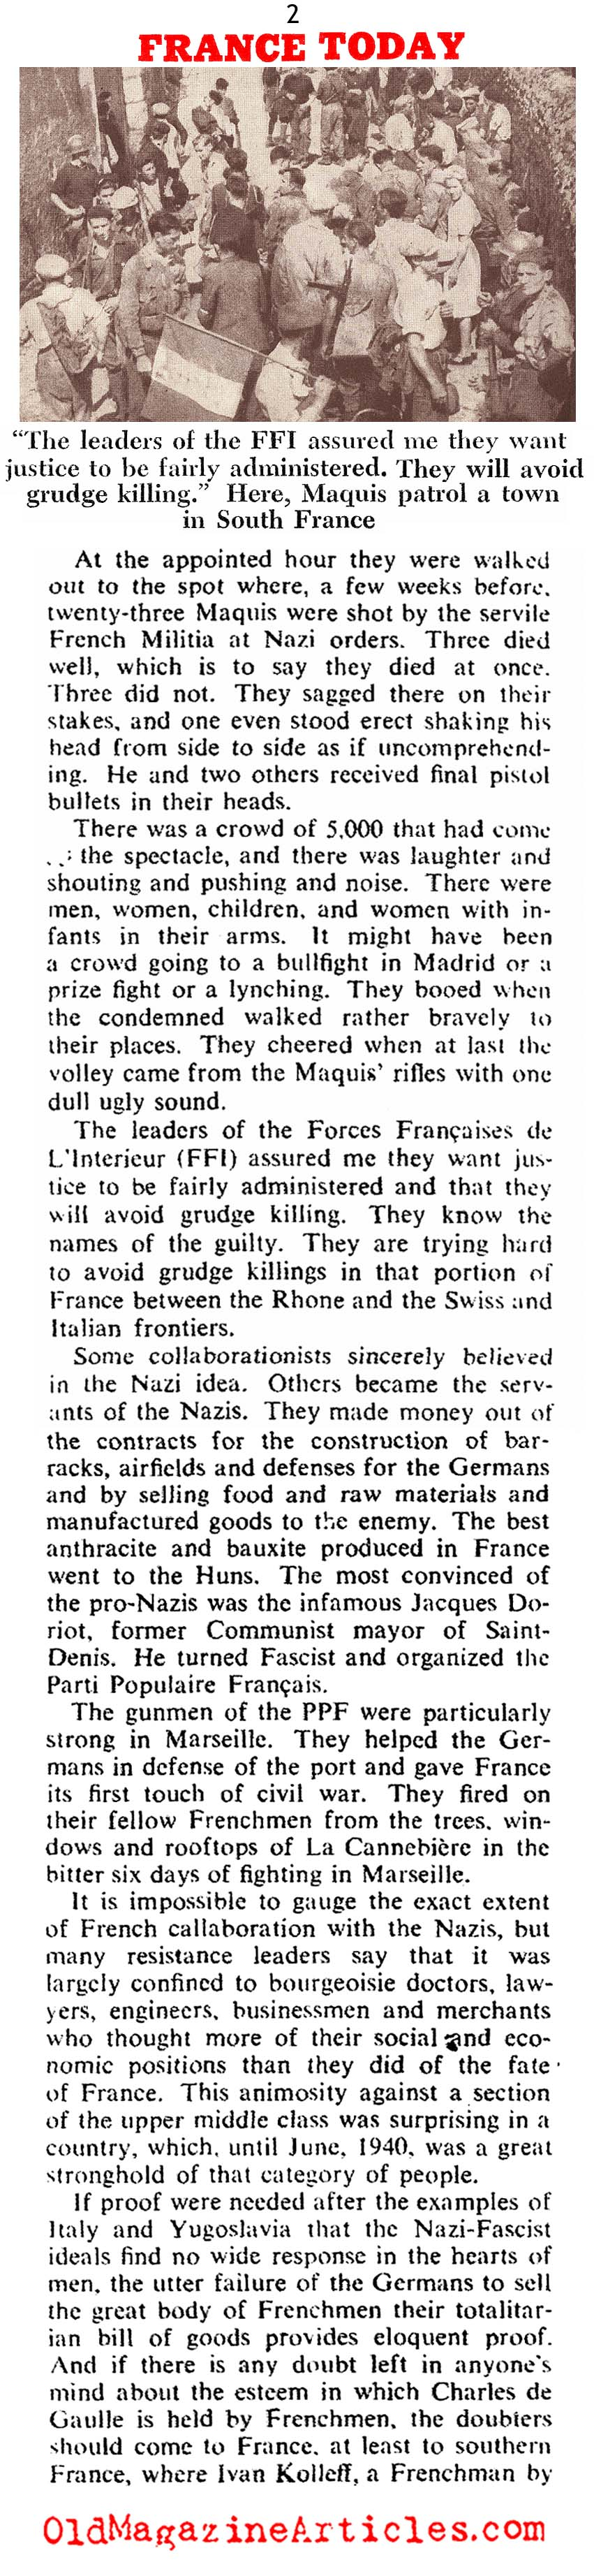 The Execution of French Traitors (Collier's Magazine, 1944)